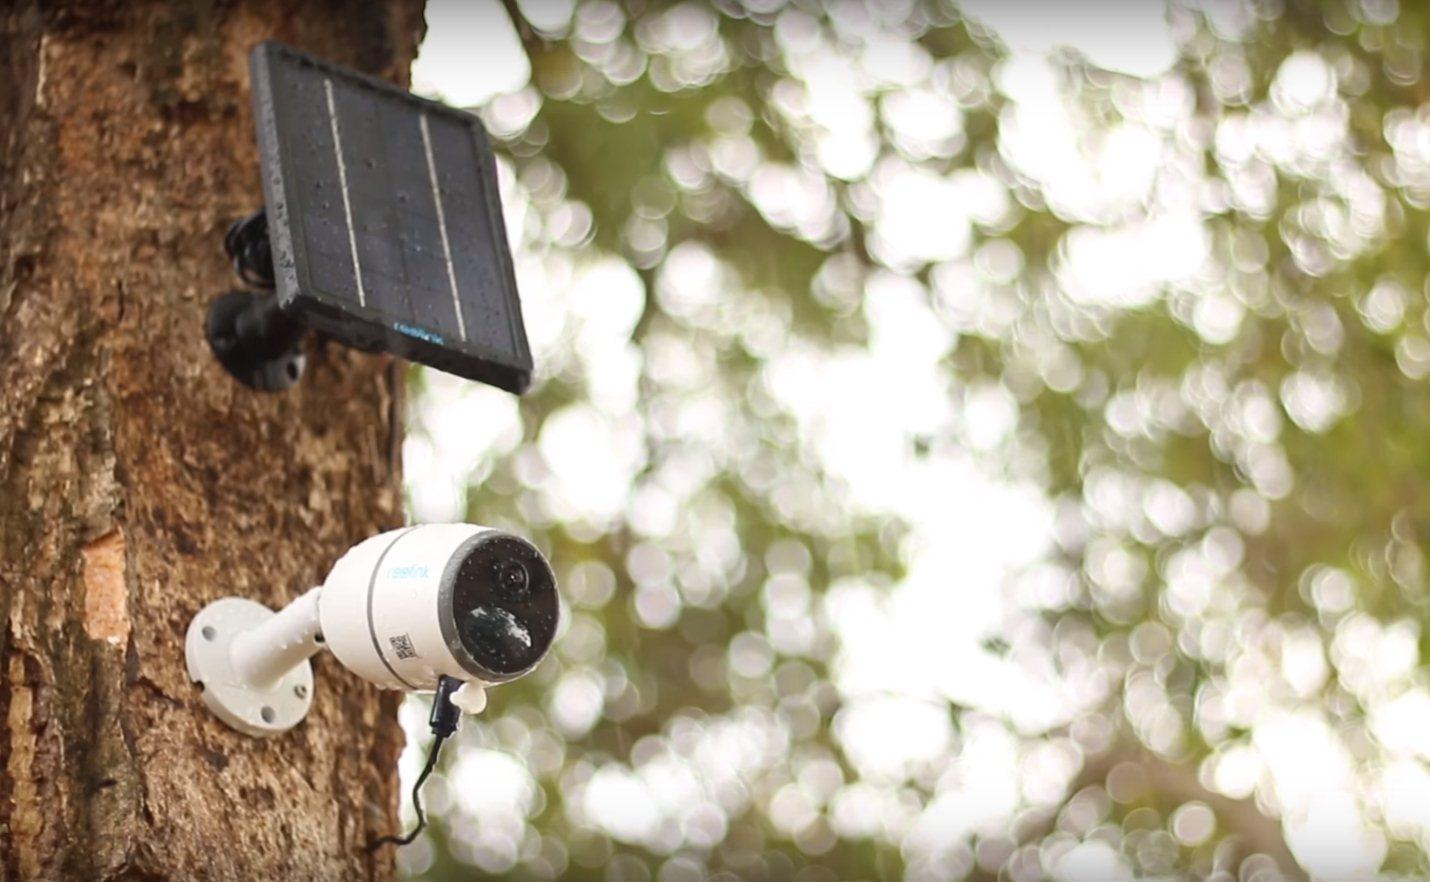 The Reolink Go's battery is reported good for 500 minutes of live view footage, but connection to an optional solar panel could mean a set and forget installation